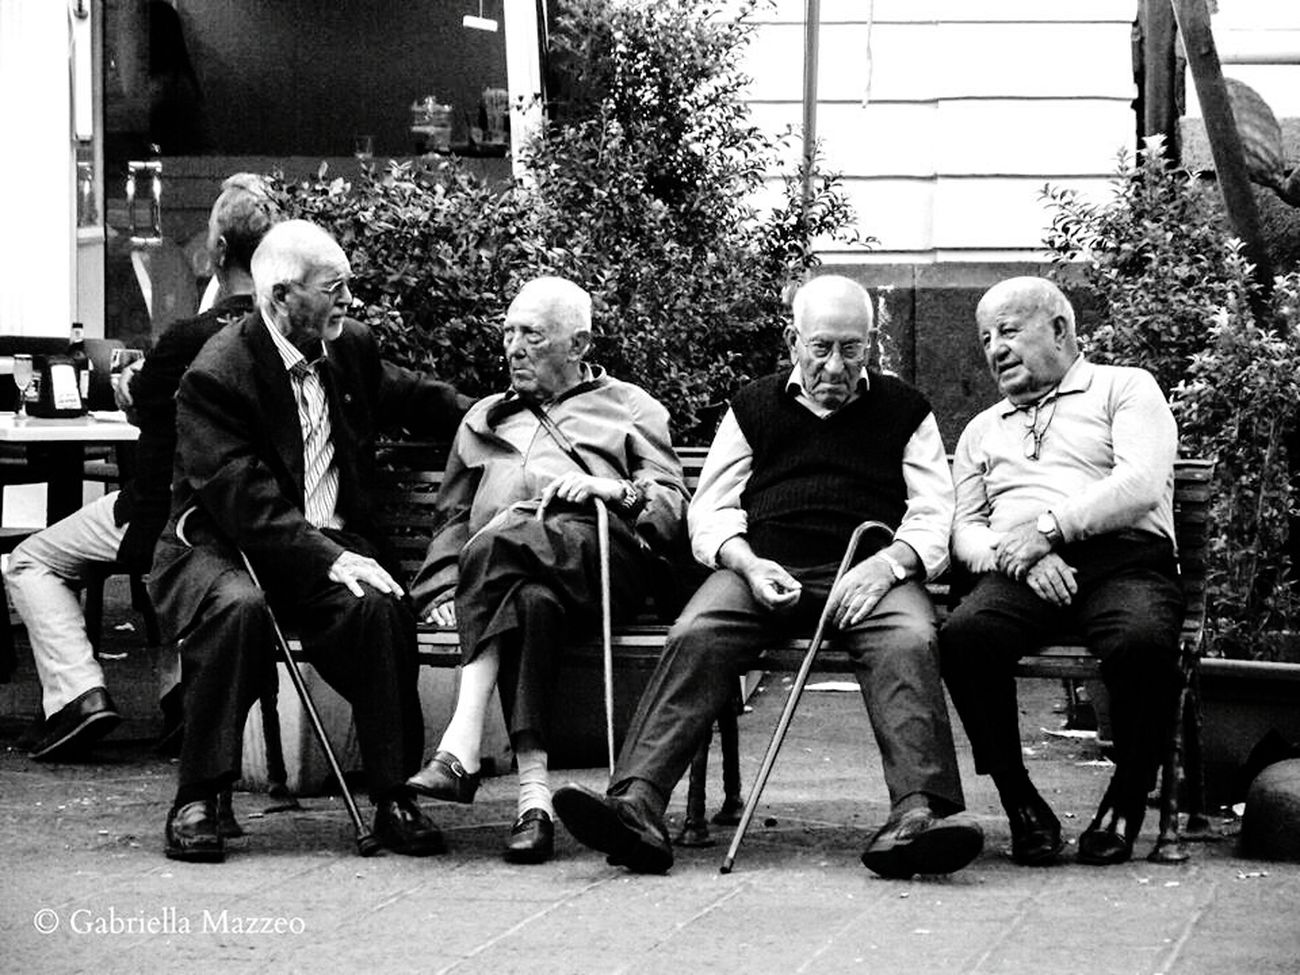 Old Style Brings Back Memories  Taking Photos Stolen Moments Old Men High Contrast Black & White Walking In The Street Sicily, Italy